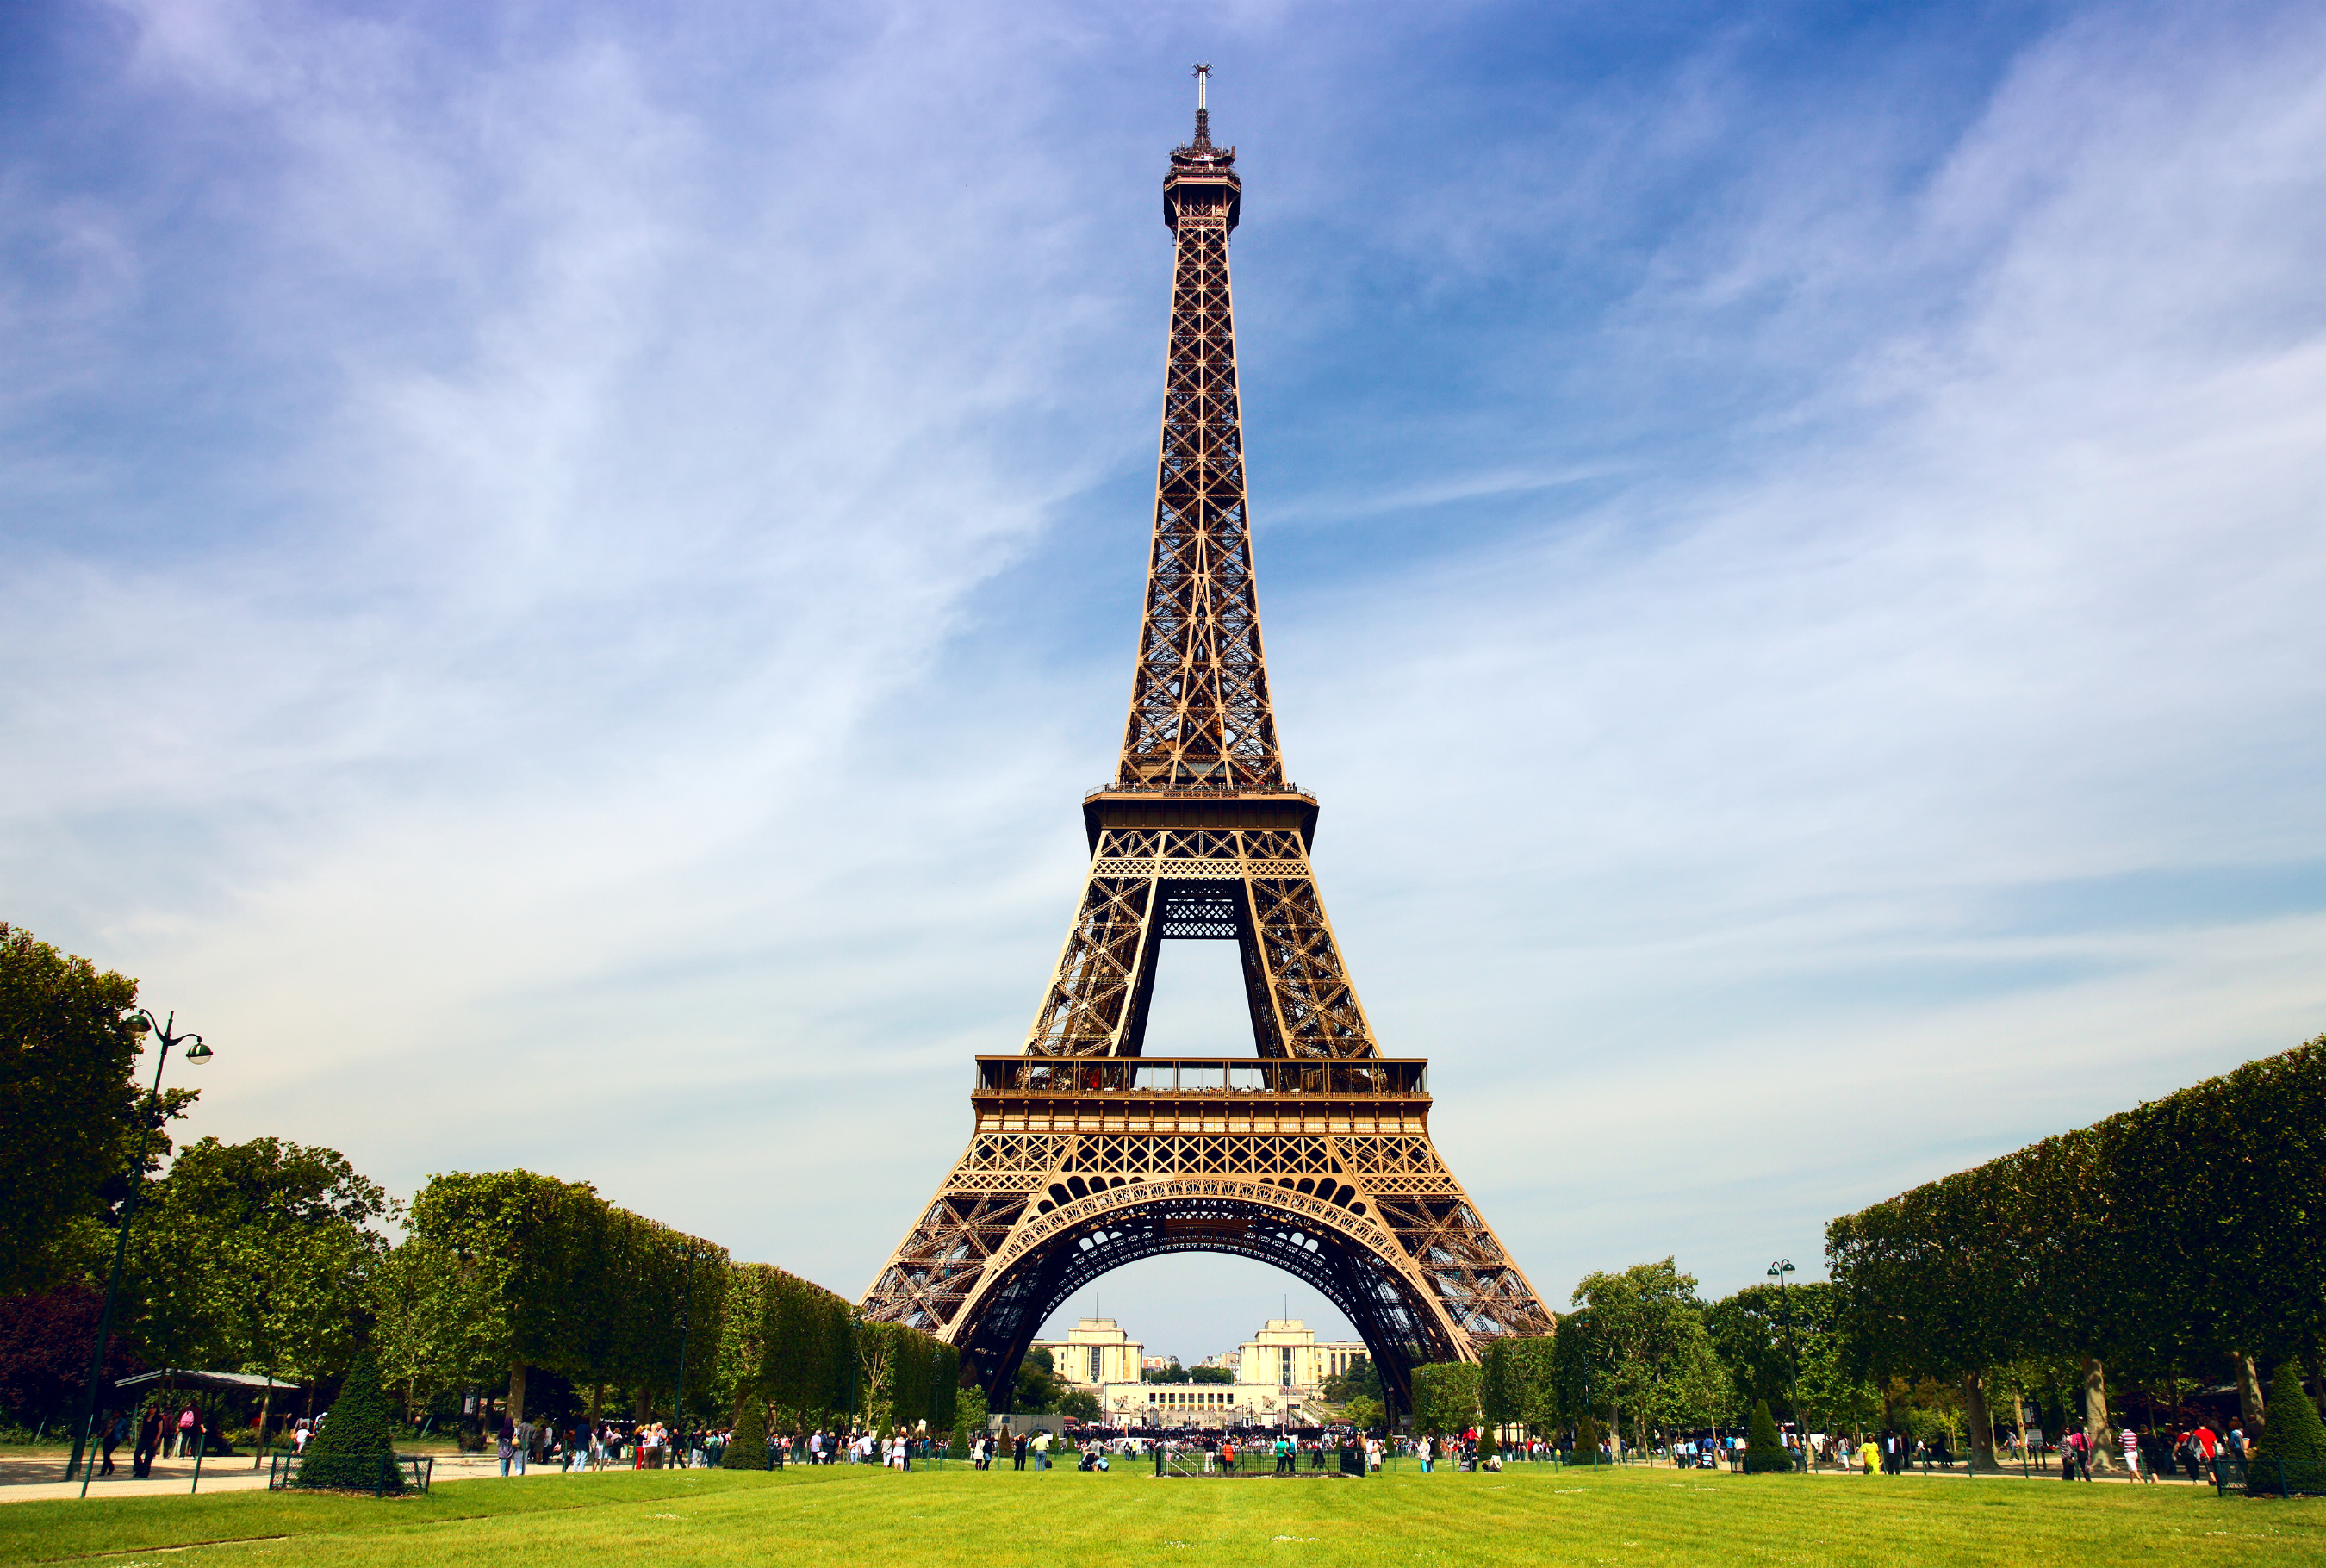 - 10 Things You May Not Know About The Eiffel Tower - HISTORY